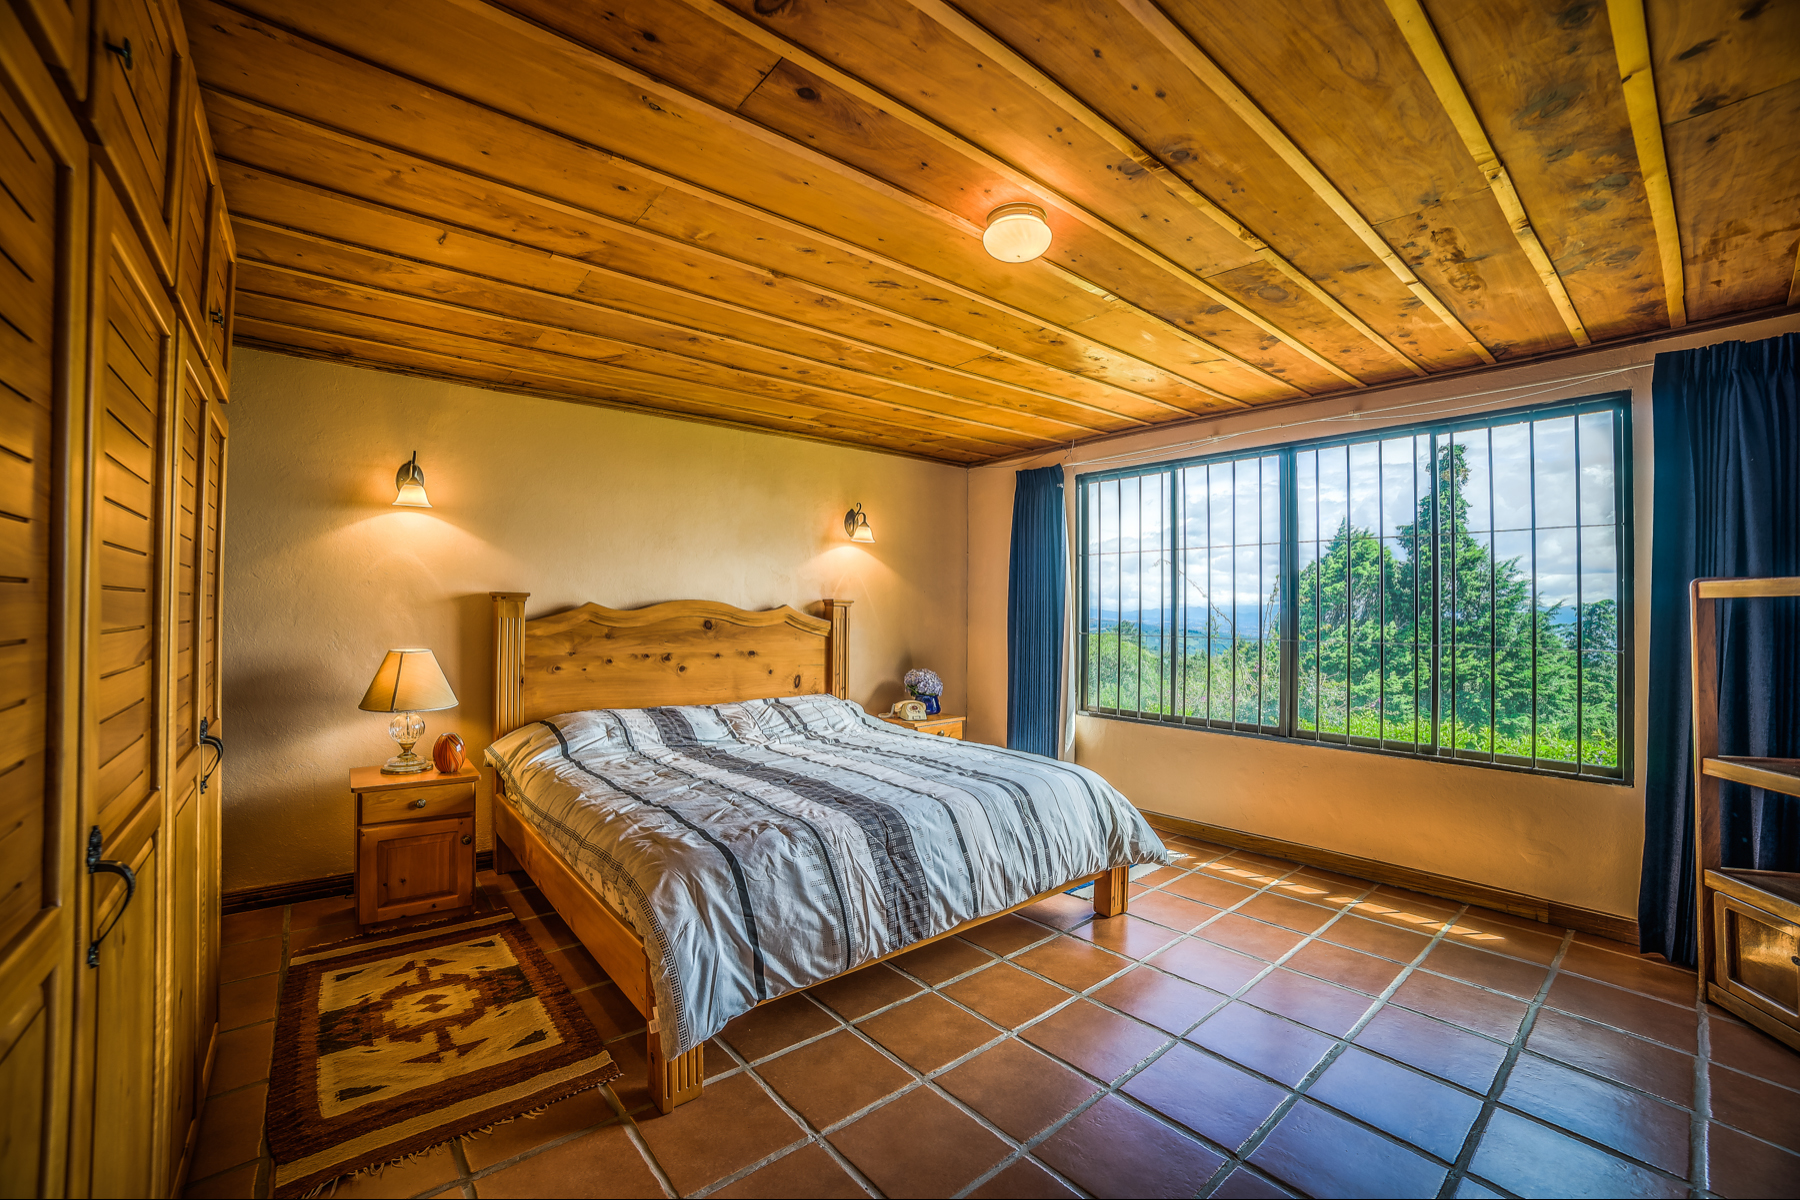 Additional photo for property listing at Poas Volcano Cabin Other Costa Rica, Other Areas In Costa Rica Costa Rica